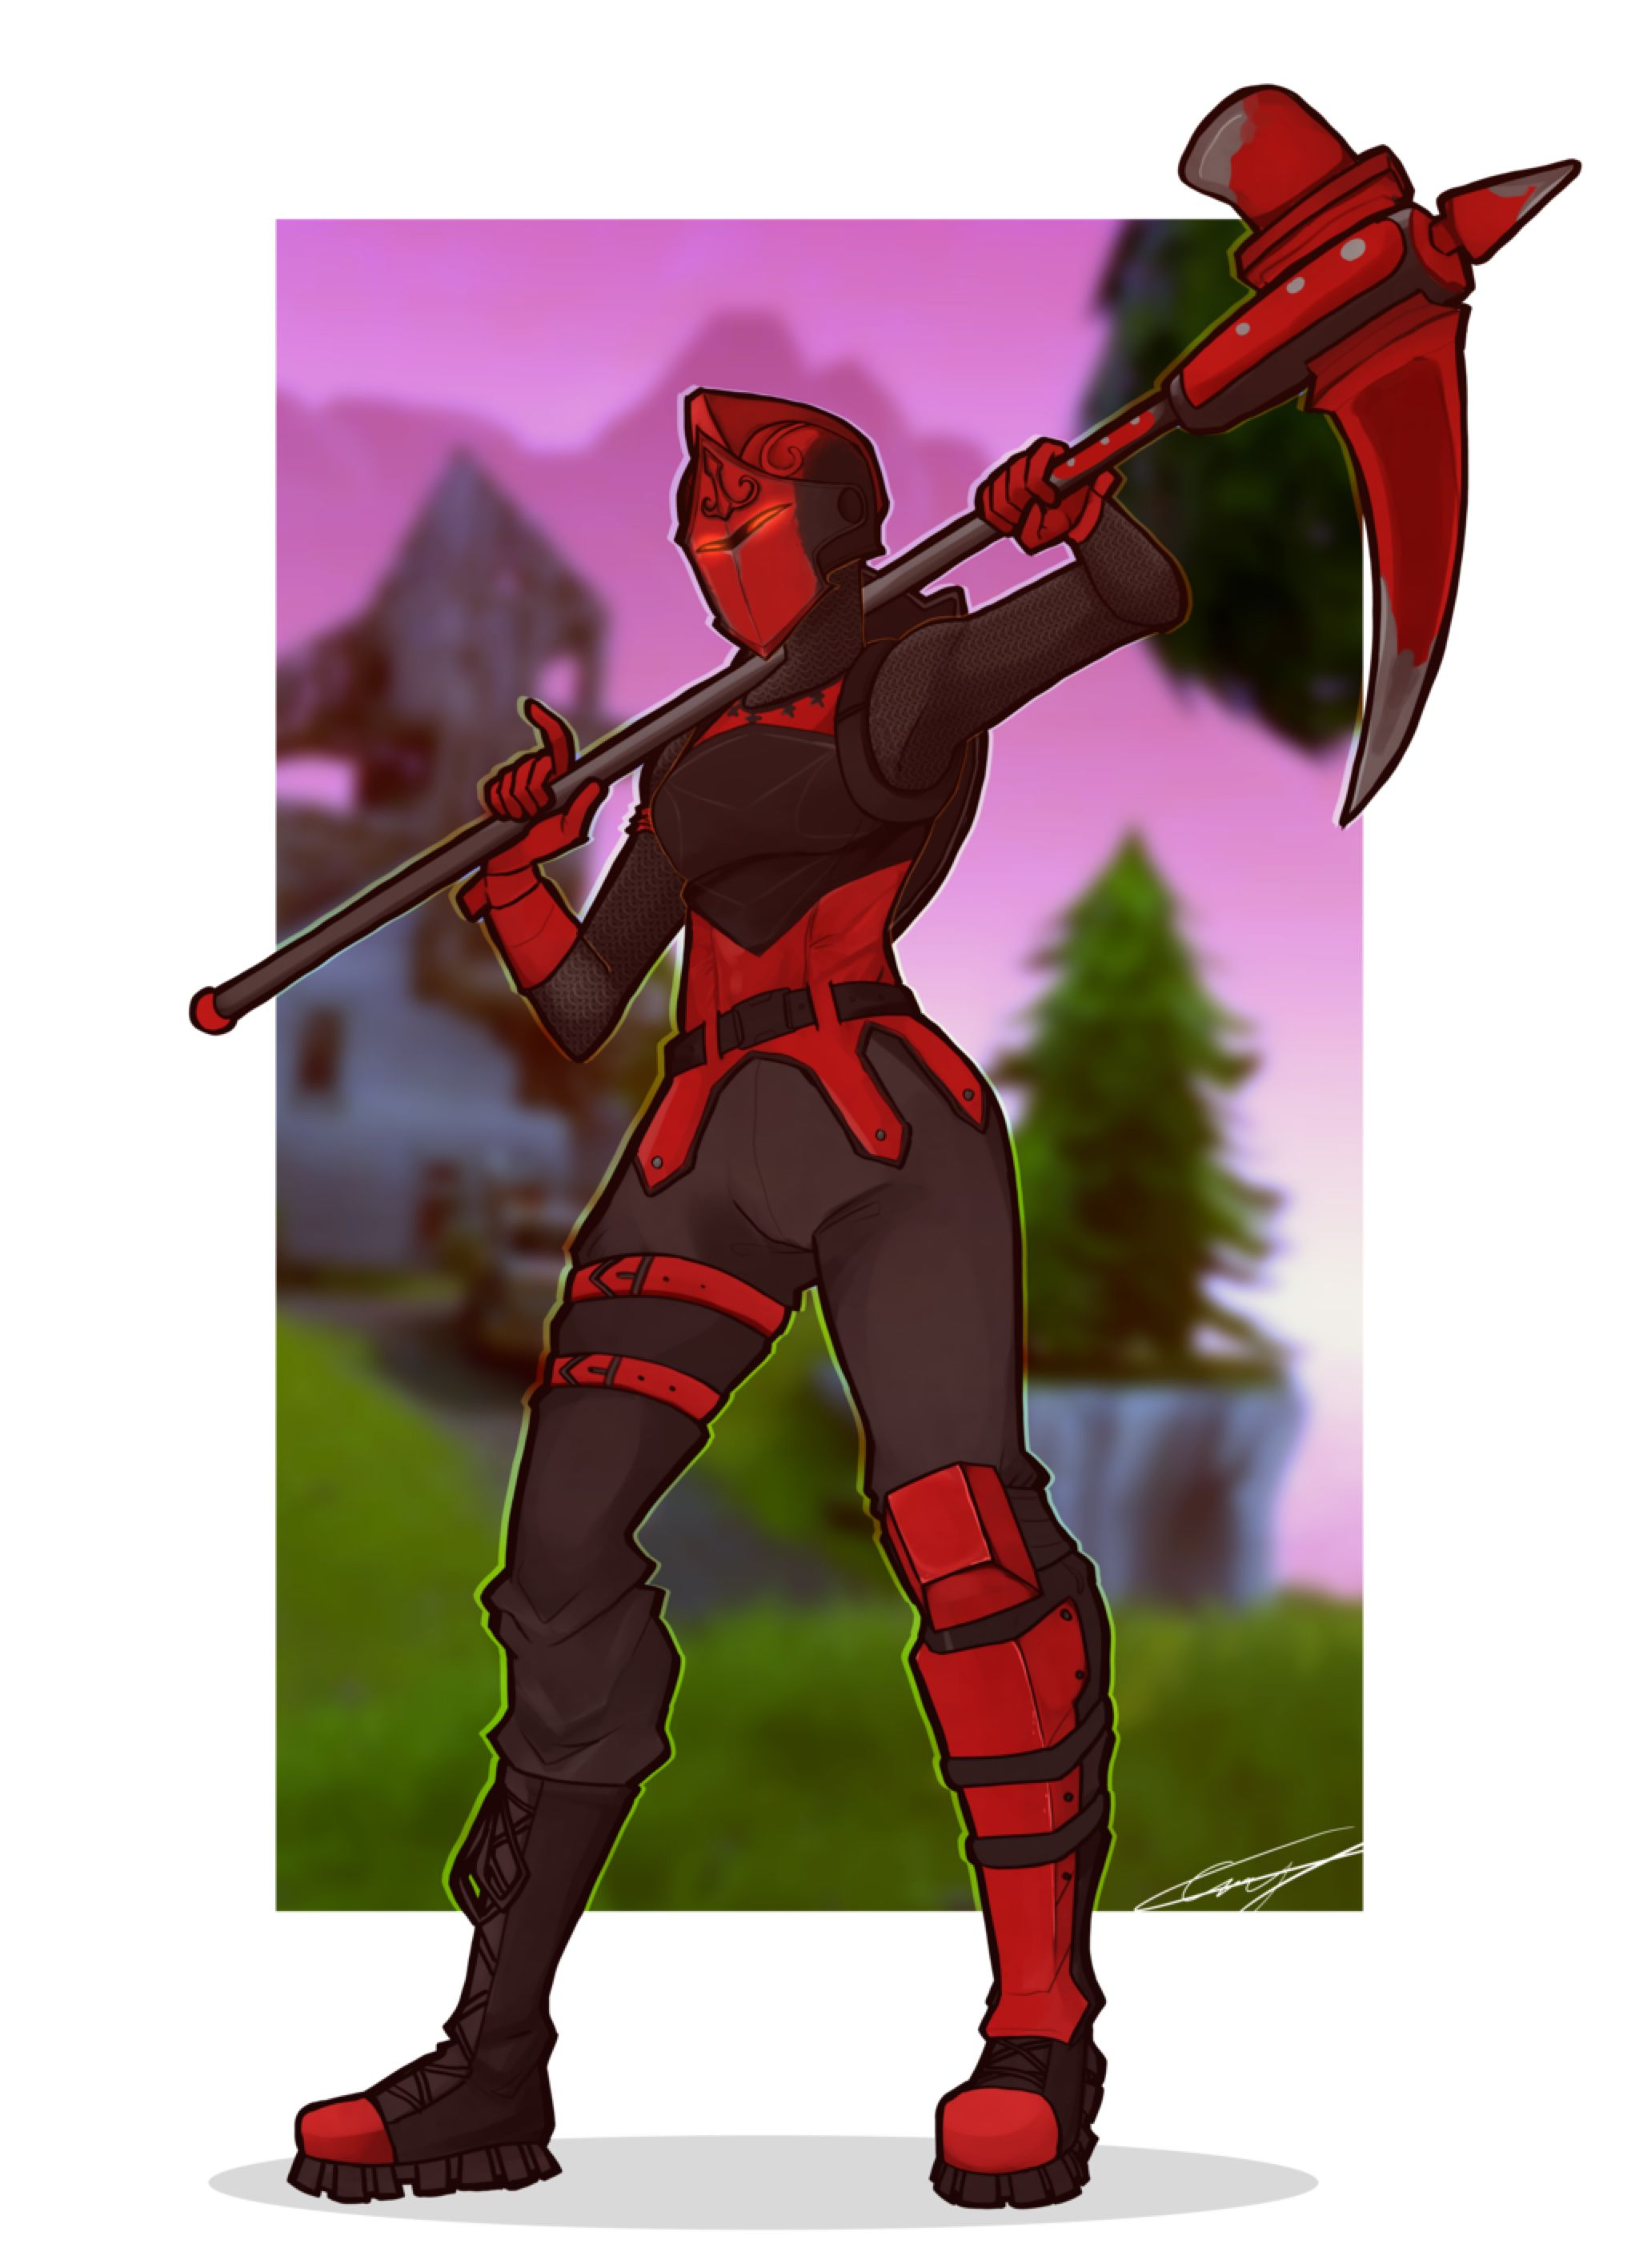 Red Knight By Caseykeshui On Deviantart With Images Red